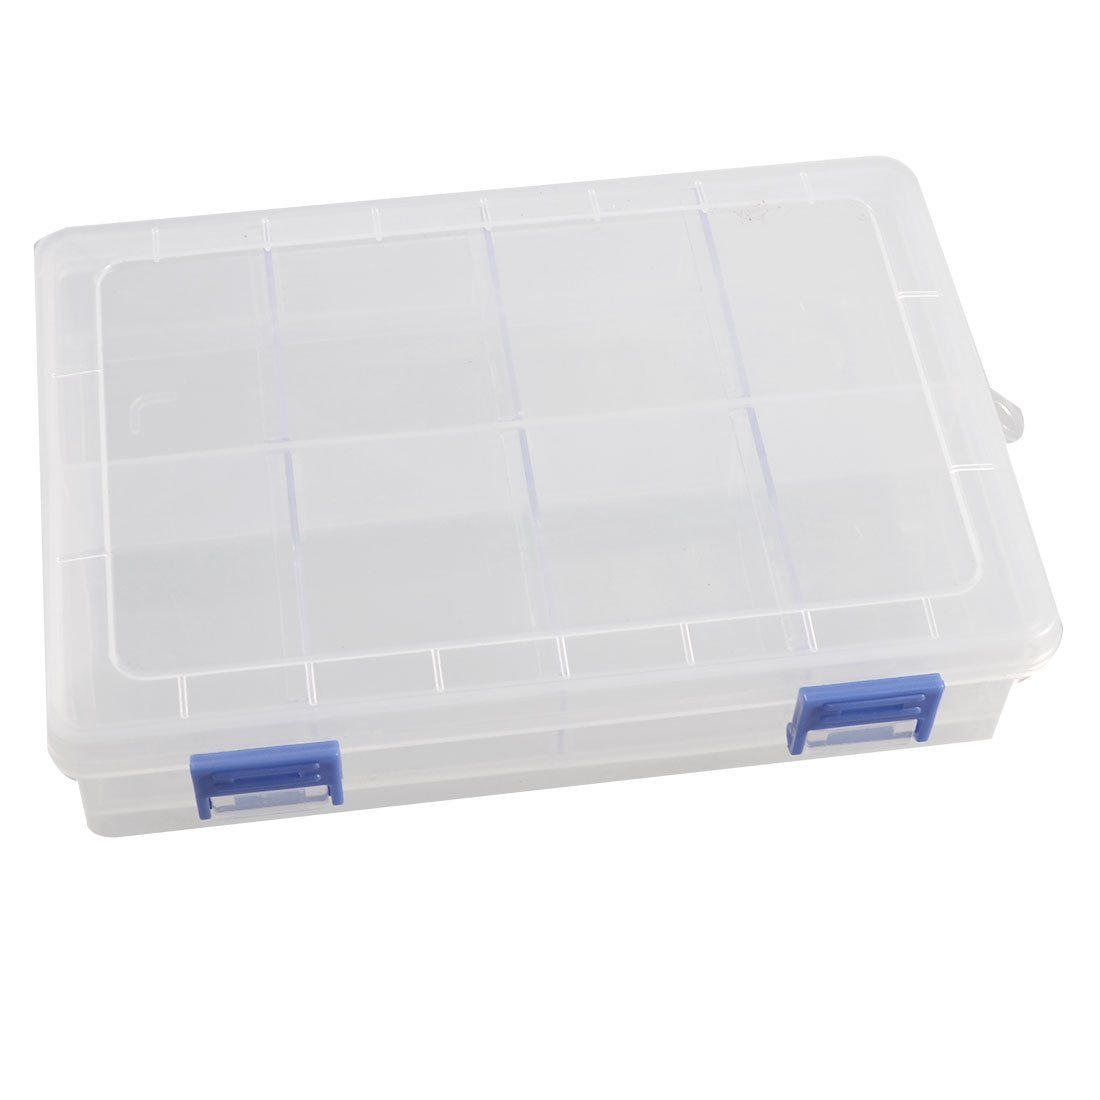 uxcell Transparent Plastic 8 Compartments Electronic Component Case Organizer